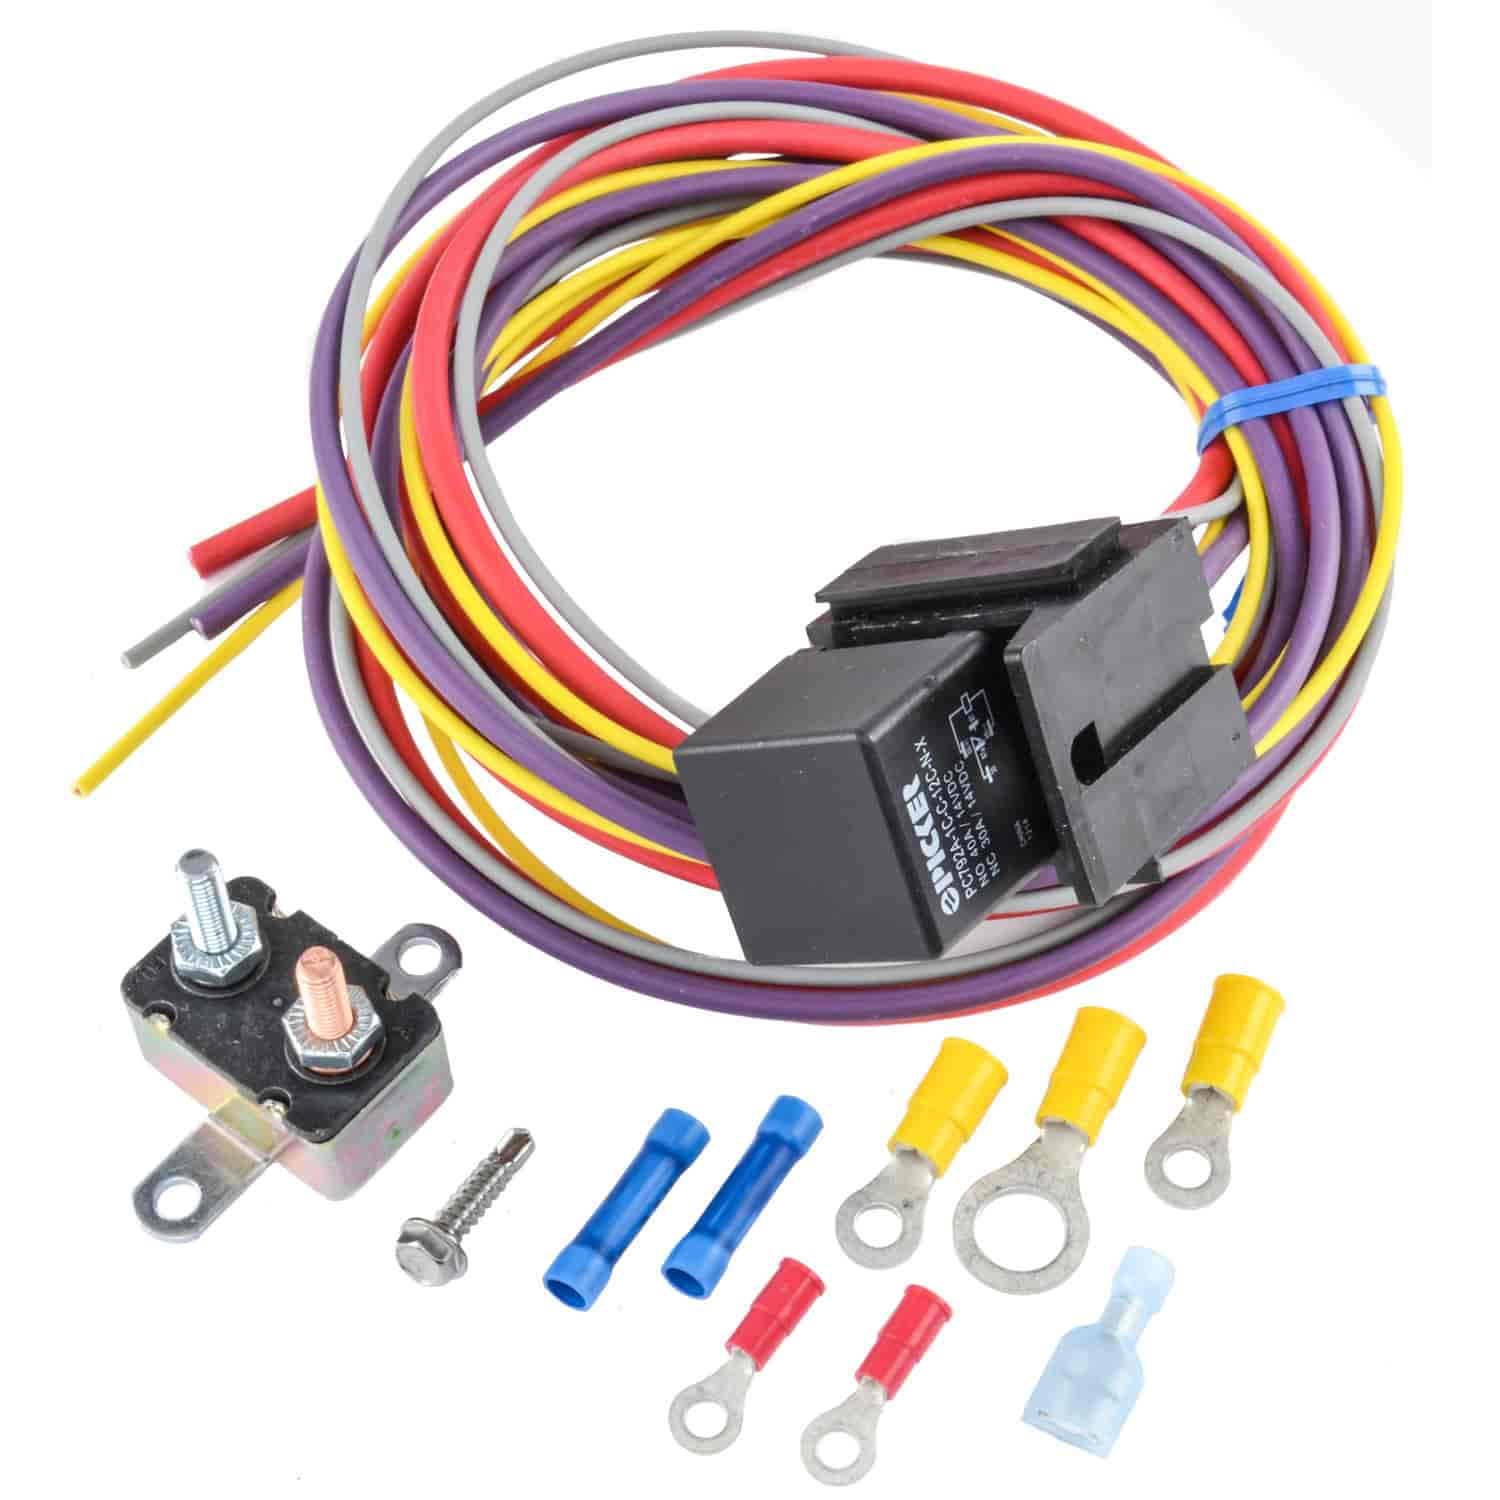 555 10559 jegs performance products 10559 manual controlled single fan jegs universal wiring harness at virtualis.co